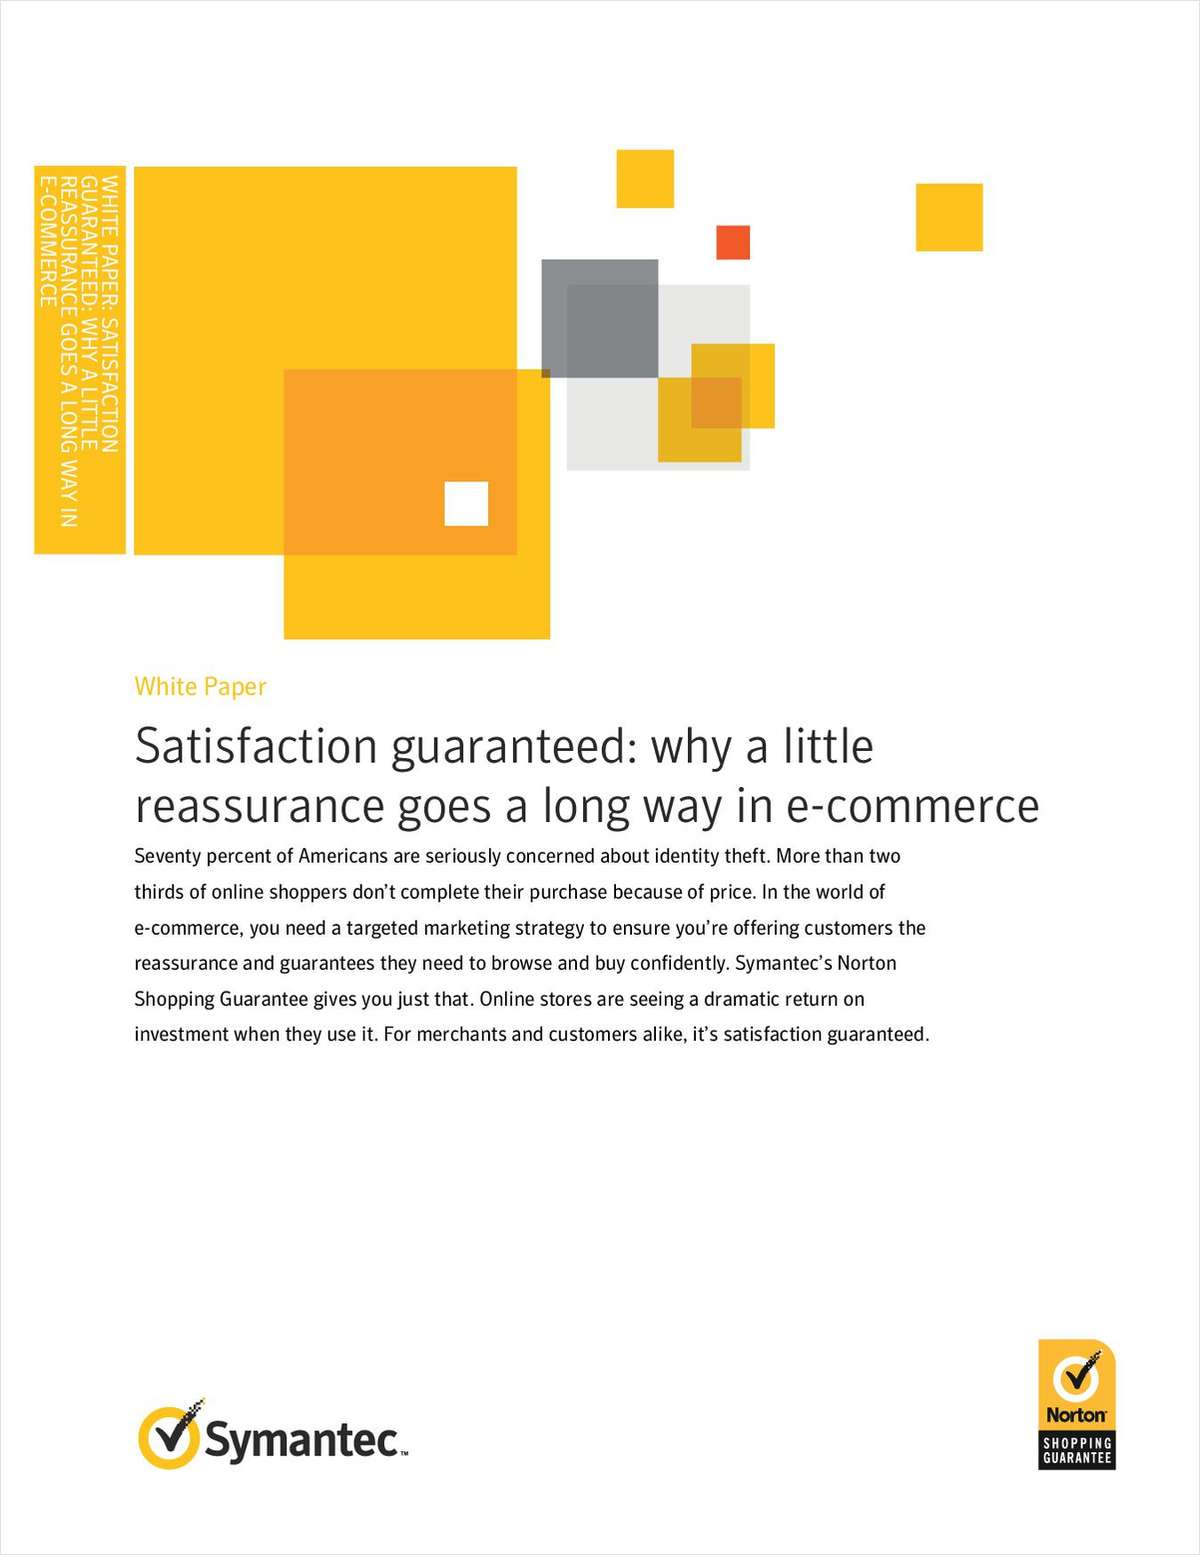 Satisfaction Guaranteed: Why a Little Reassurance Goes a Long Way in e-Commerce